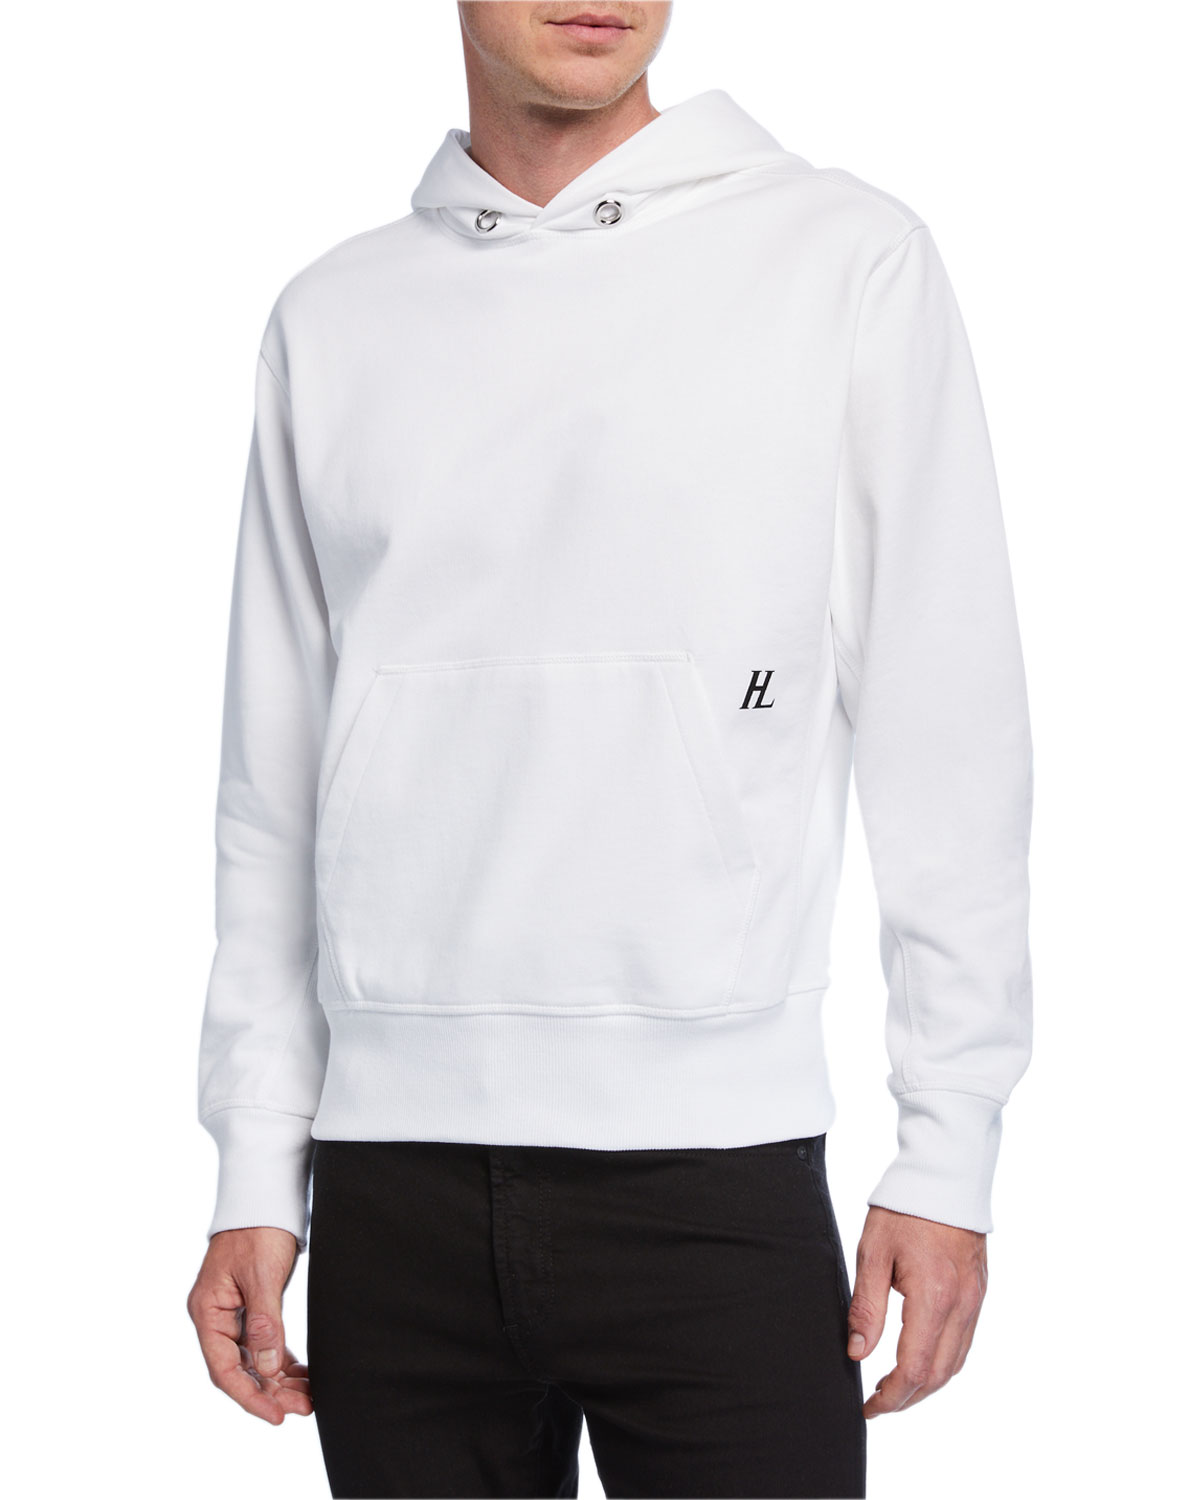 Helmut Lang Tops MEN'S LITTLE LOGO PULLOVER HOODIE